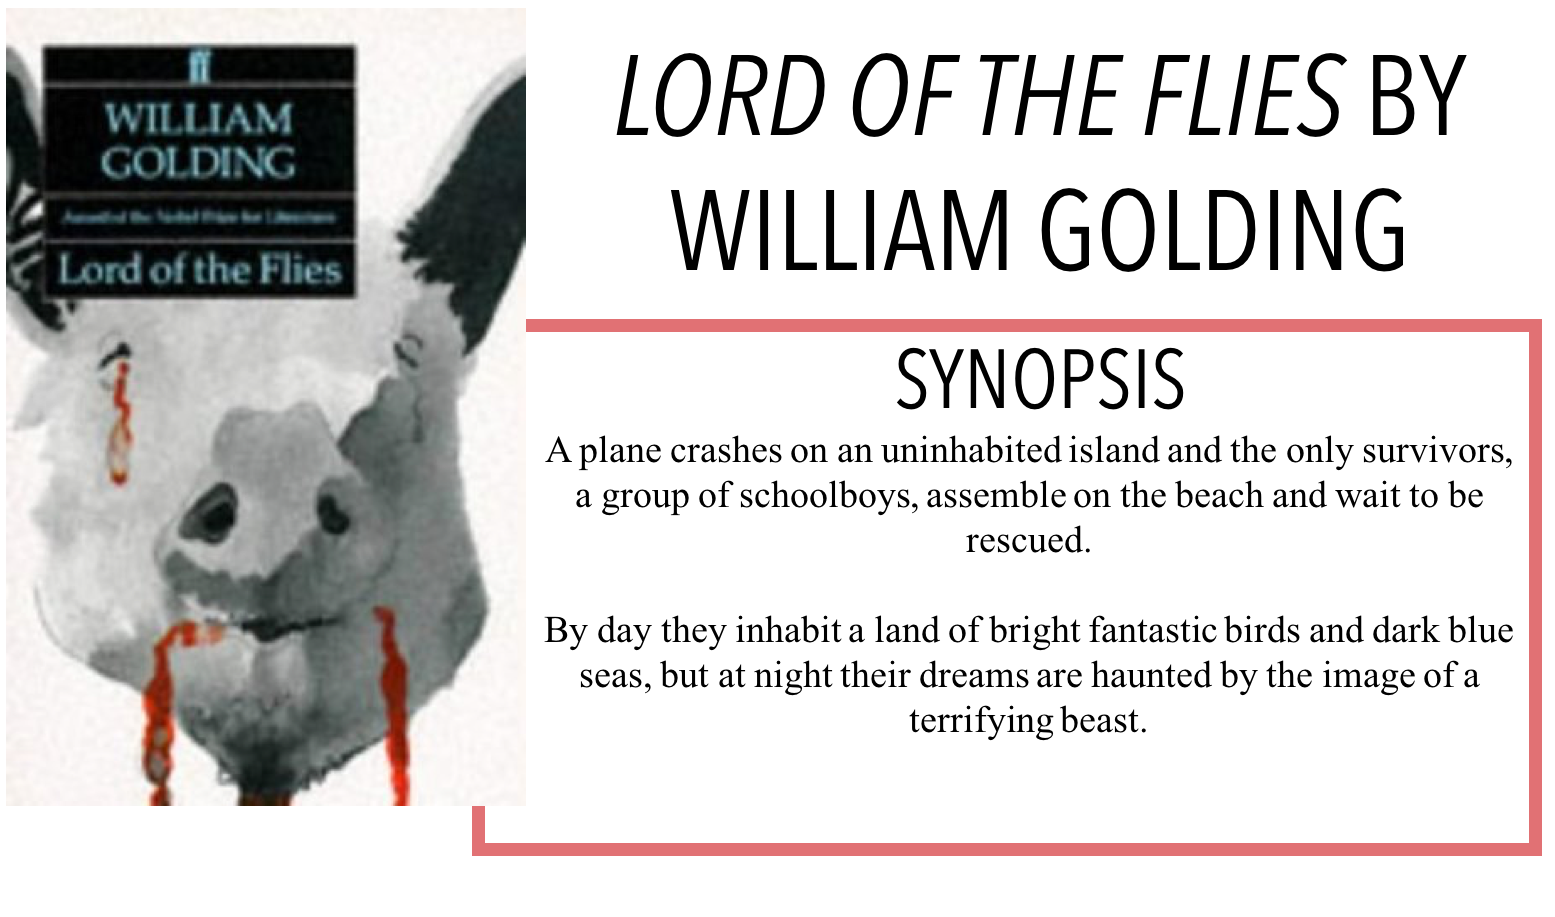 can lord of the flies william golding Lord of the flies study guide contains a biography of william golding, literature essays, quiz questions, major themes, characters, and a full summary and analysis about lord of the flies lord of the flies summary.